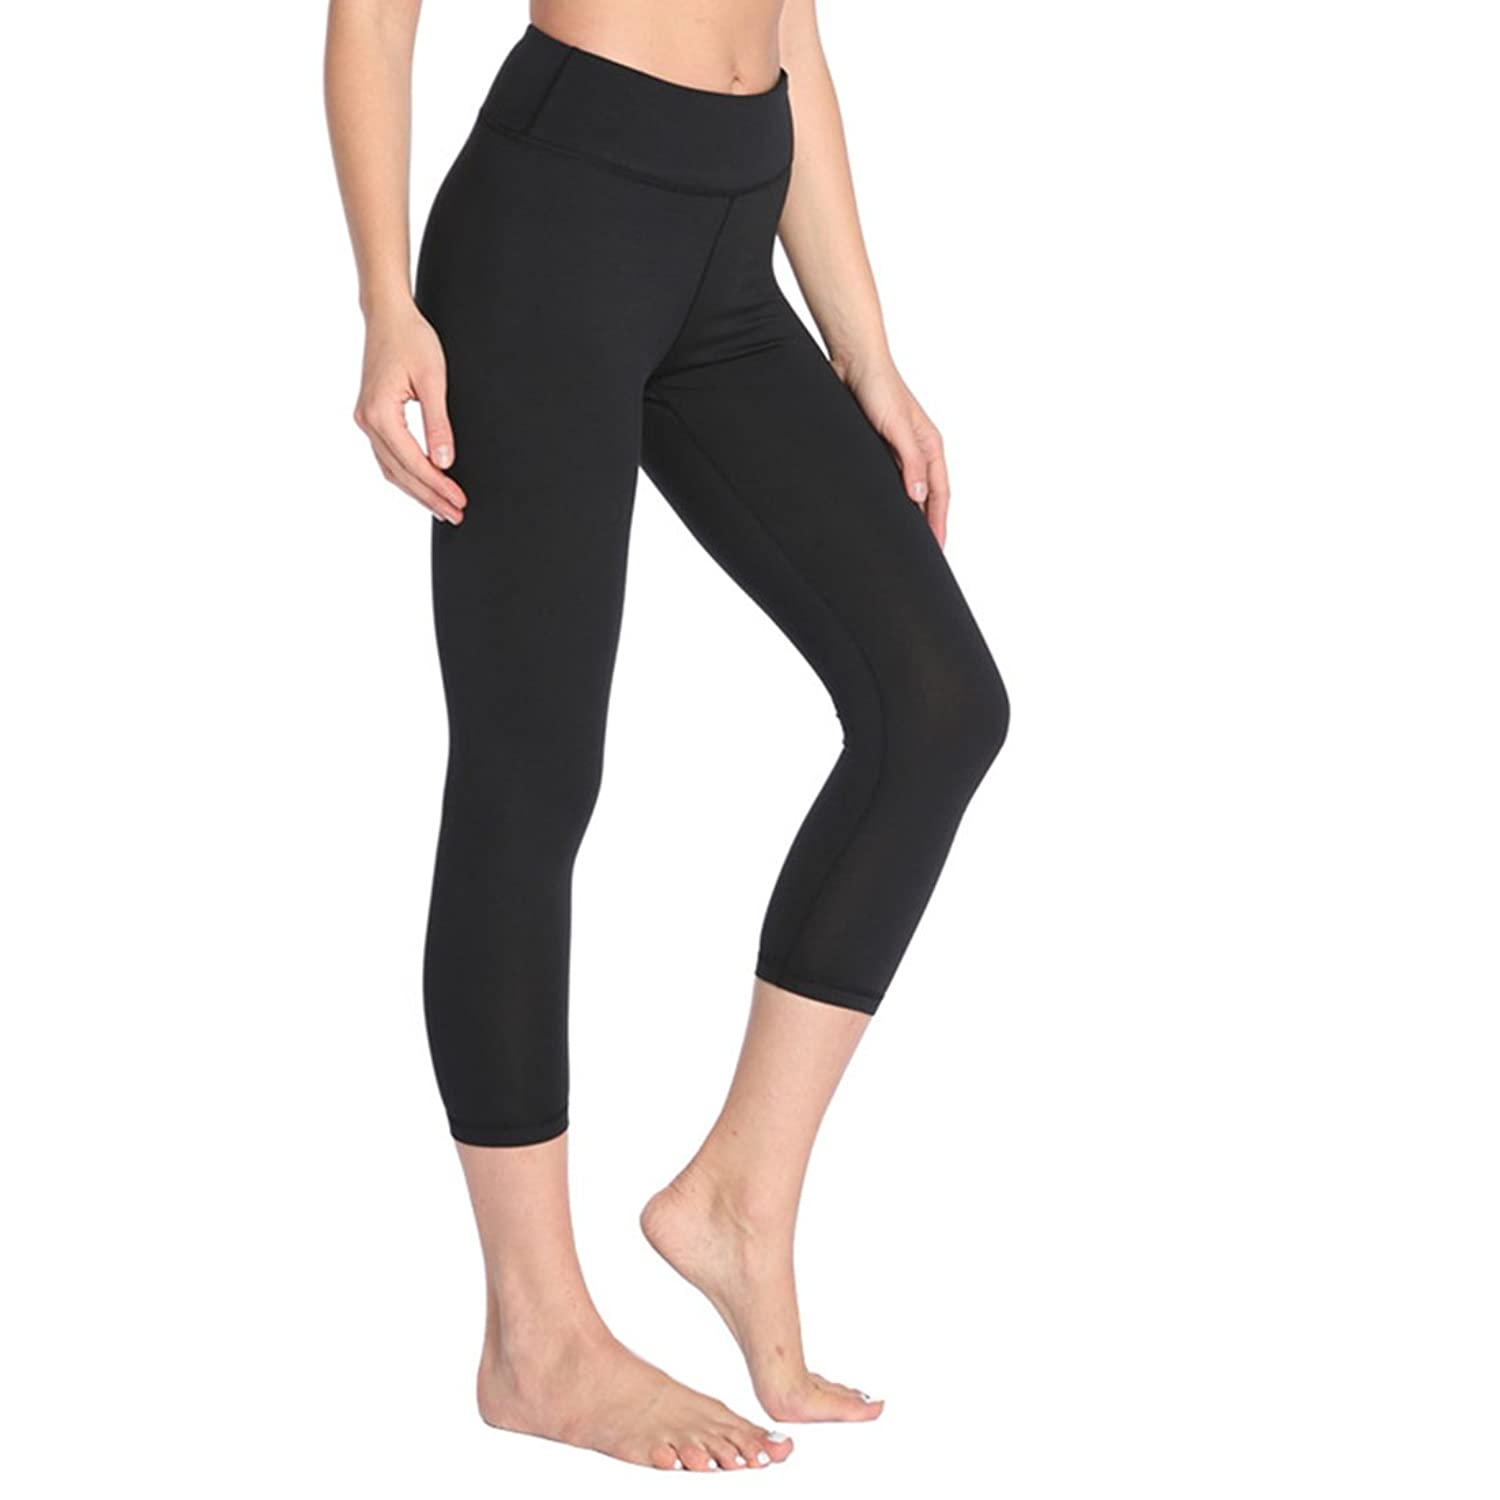 47bd99653d125 Capri leggings With Superior quality ---Non see-through, breathable and 4  way Stretch fabric Provide greater freedom of movement. Hidden Pocket  ---This high ...